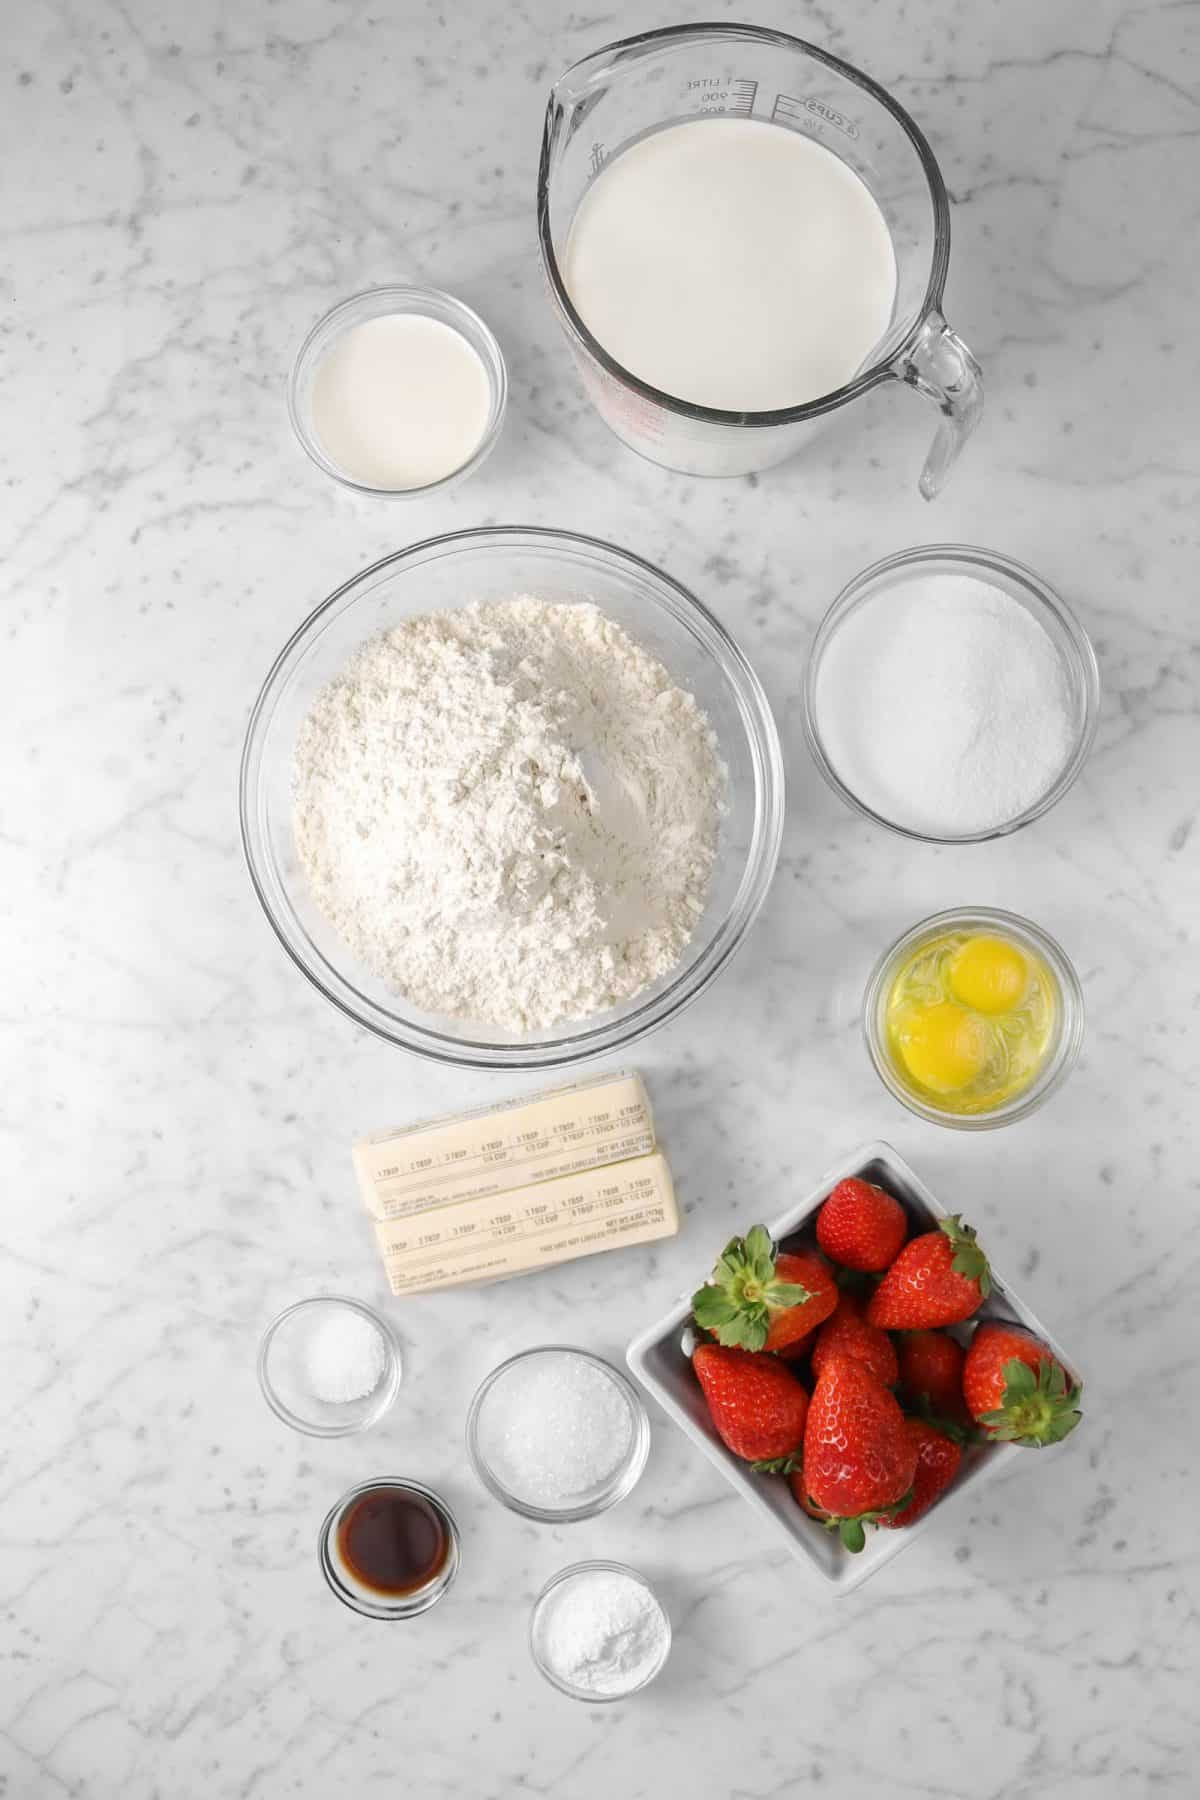 ingredients for strawberry shortcakes